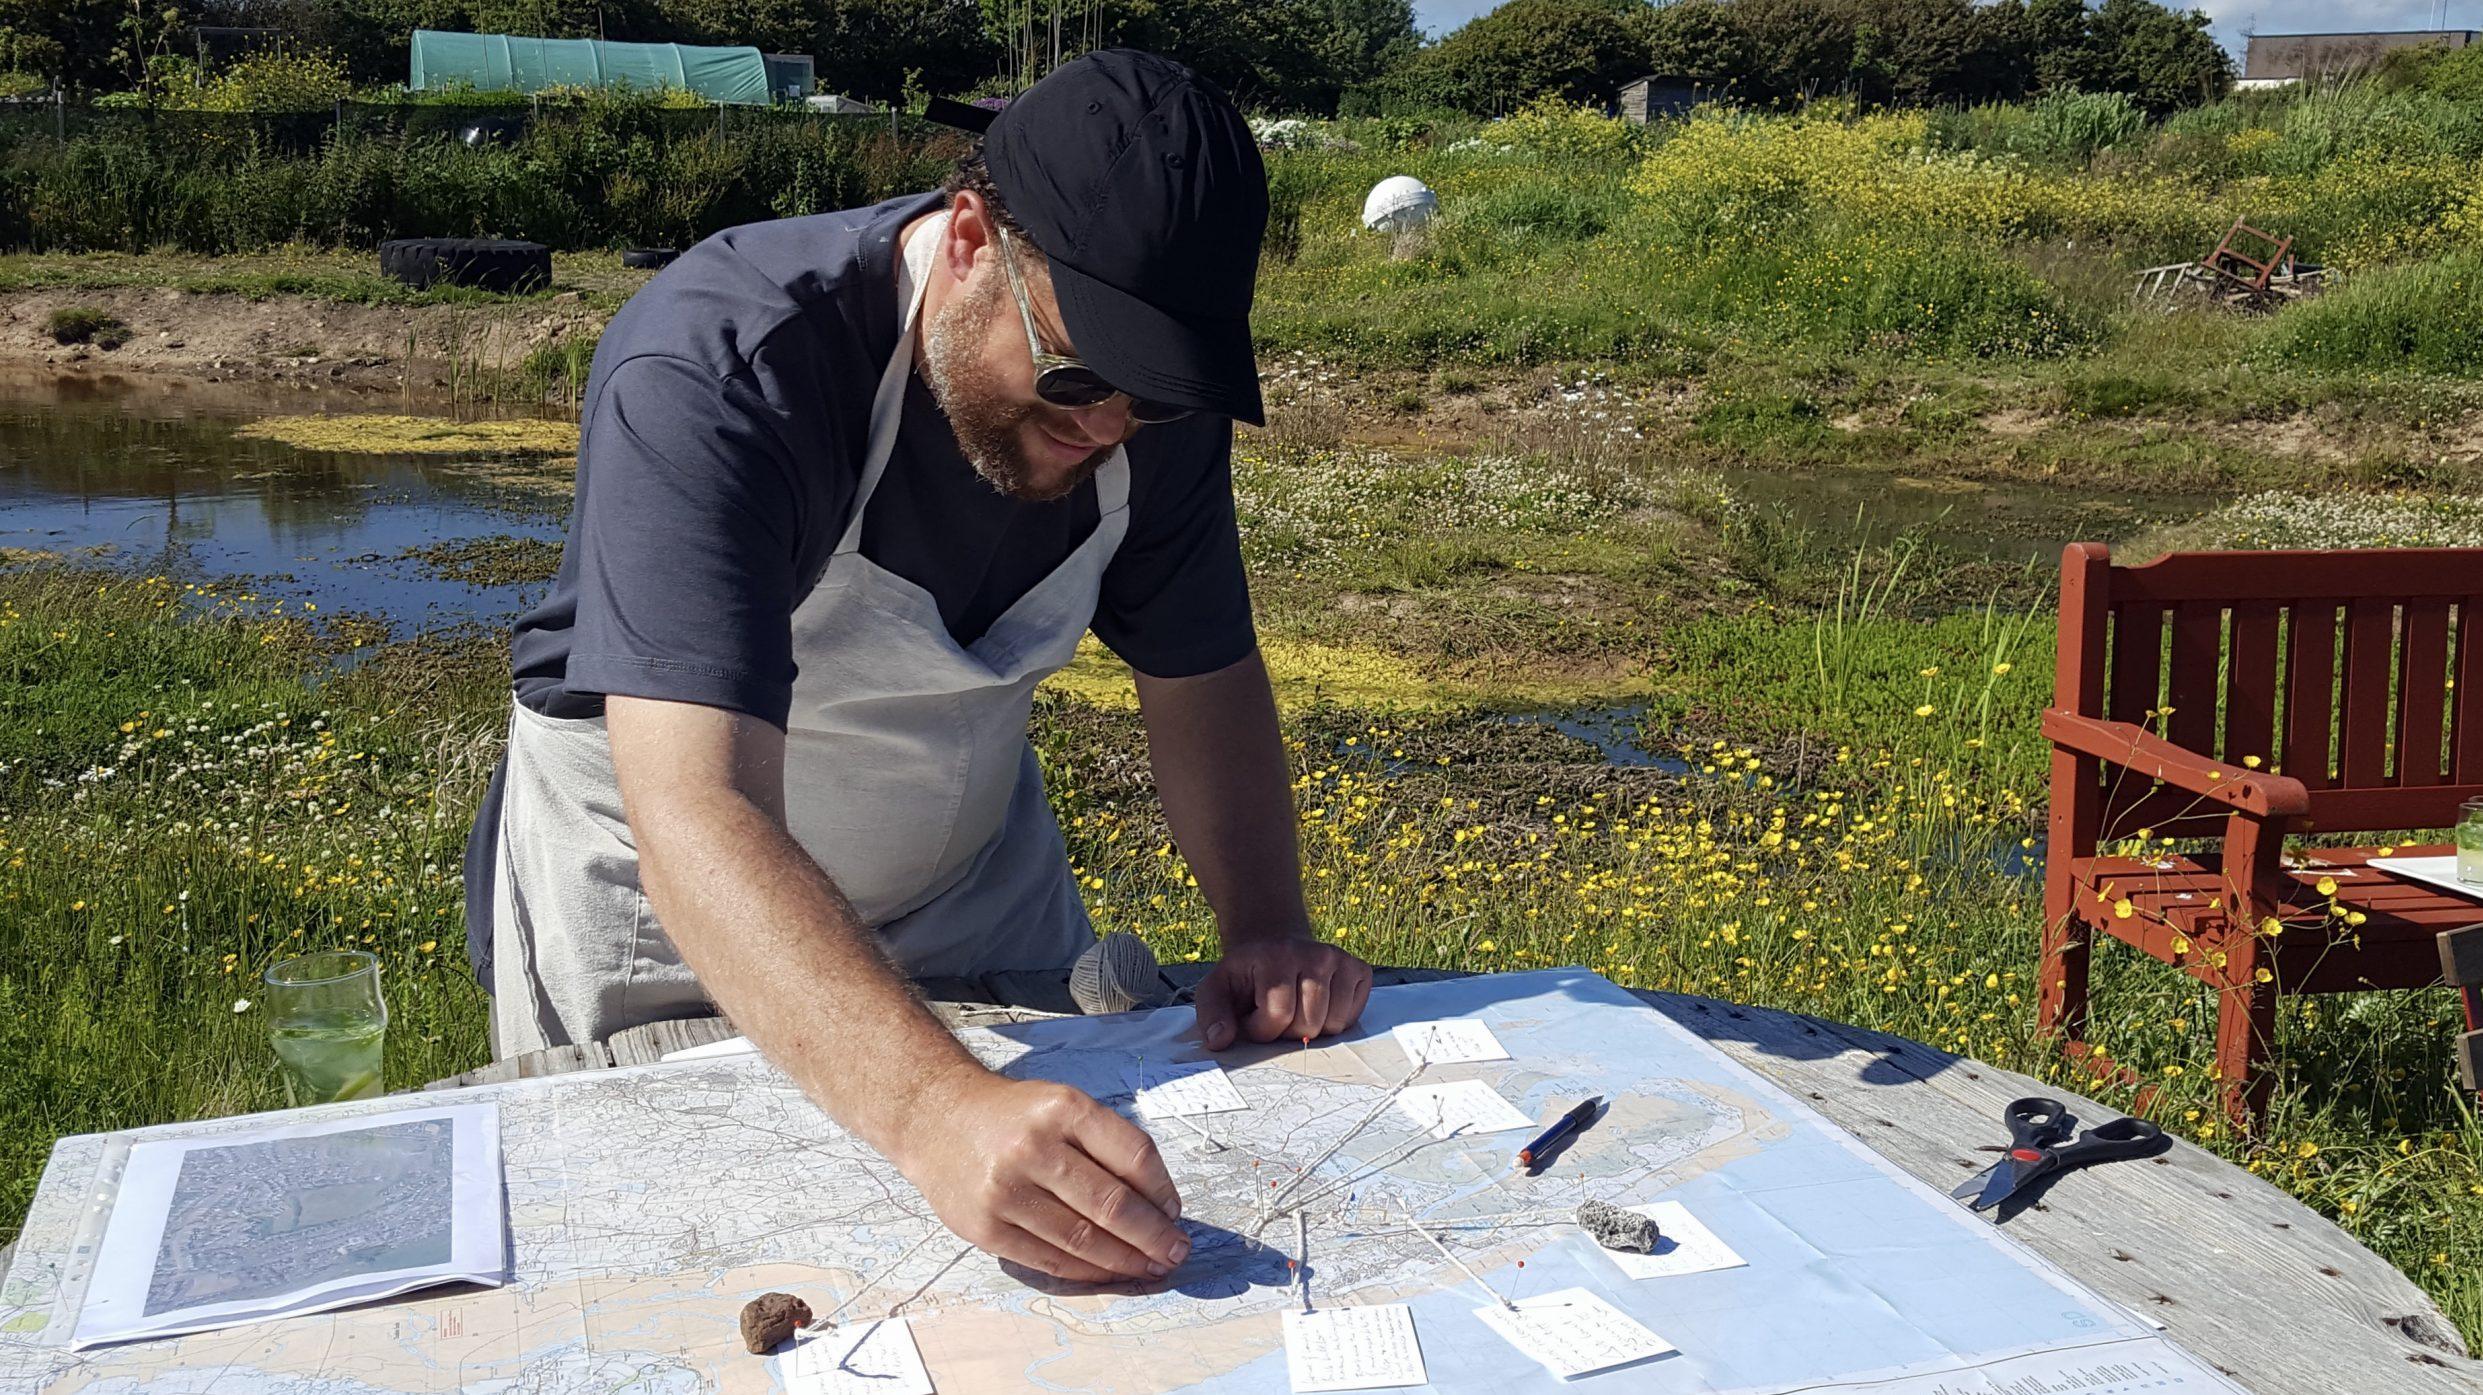 Image: Artist Owen Griffiths places pins, string and hand written notes on a map of Barrow.